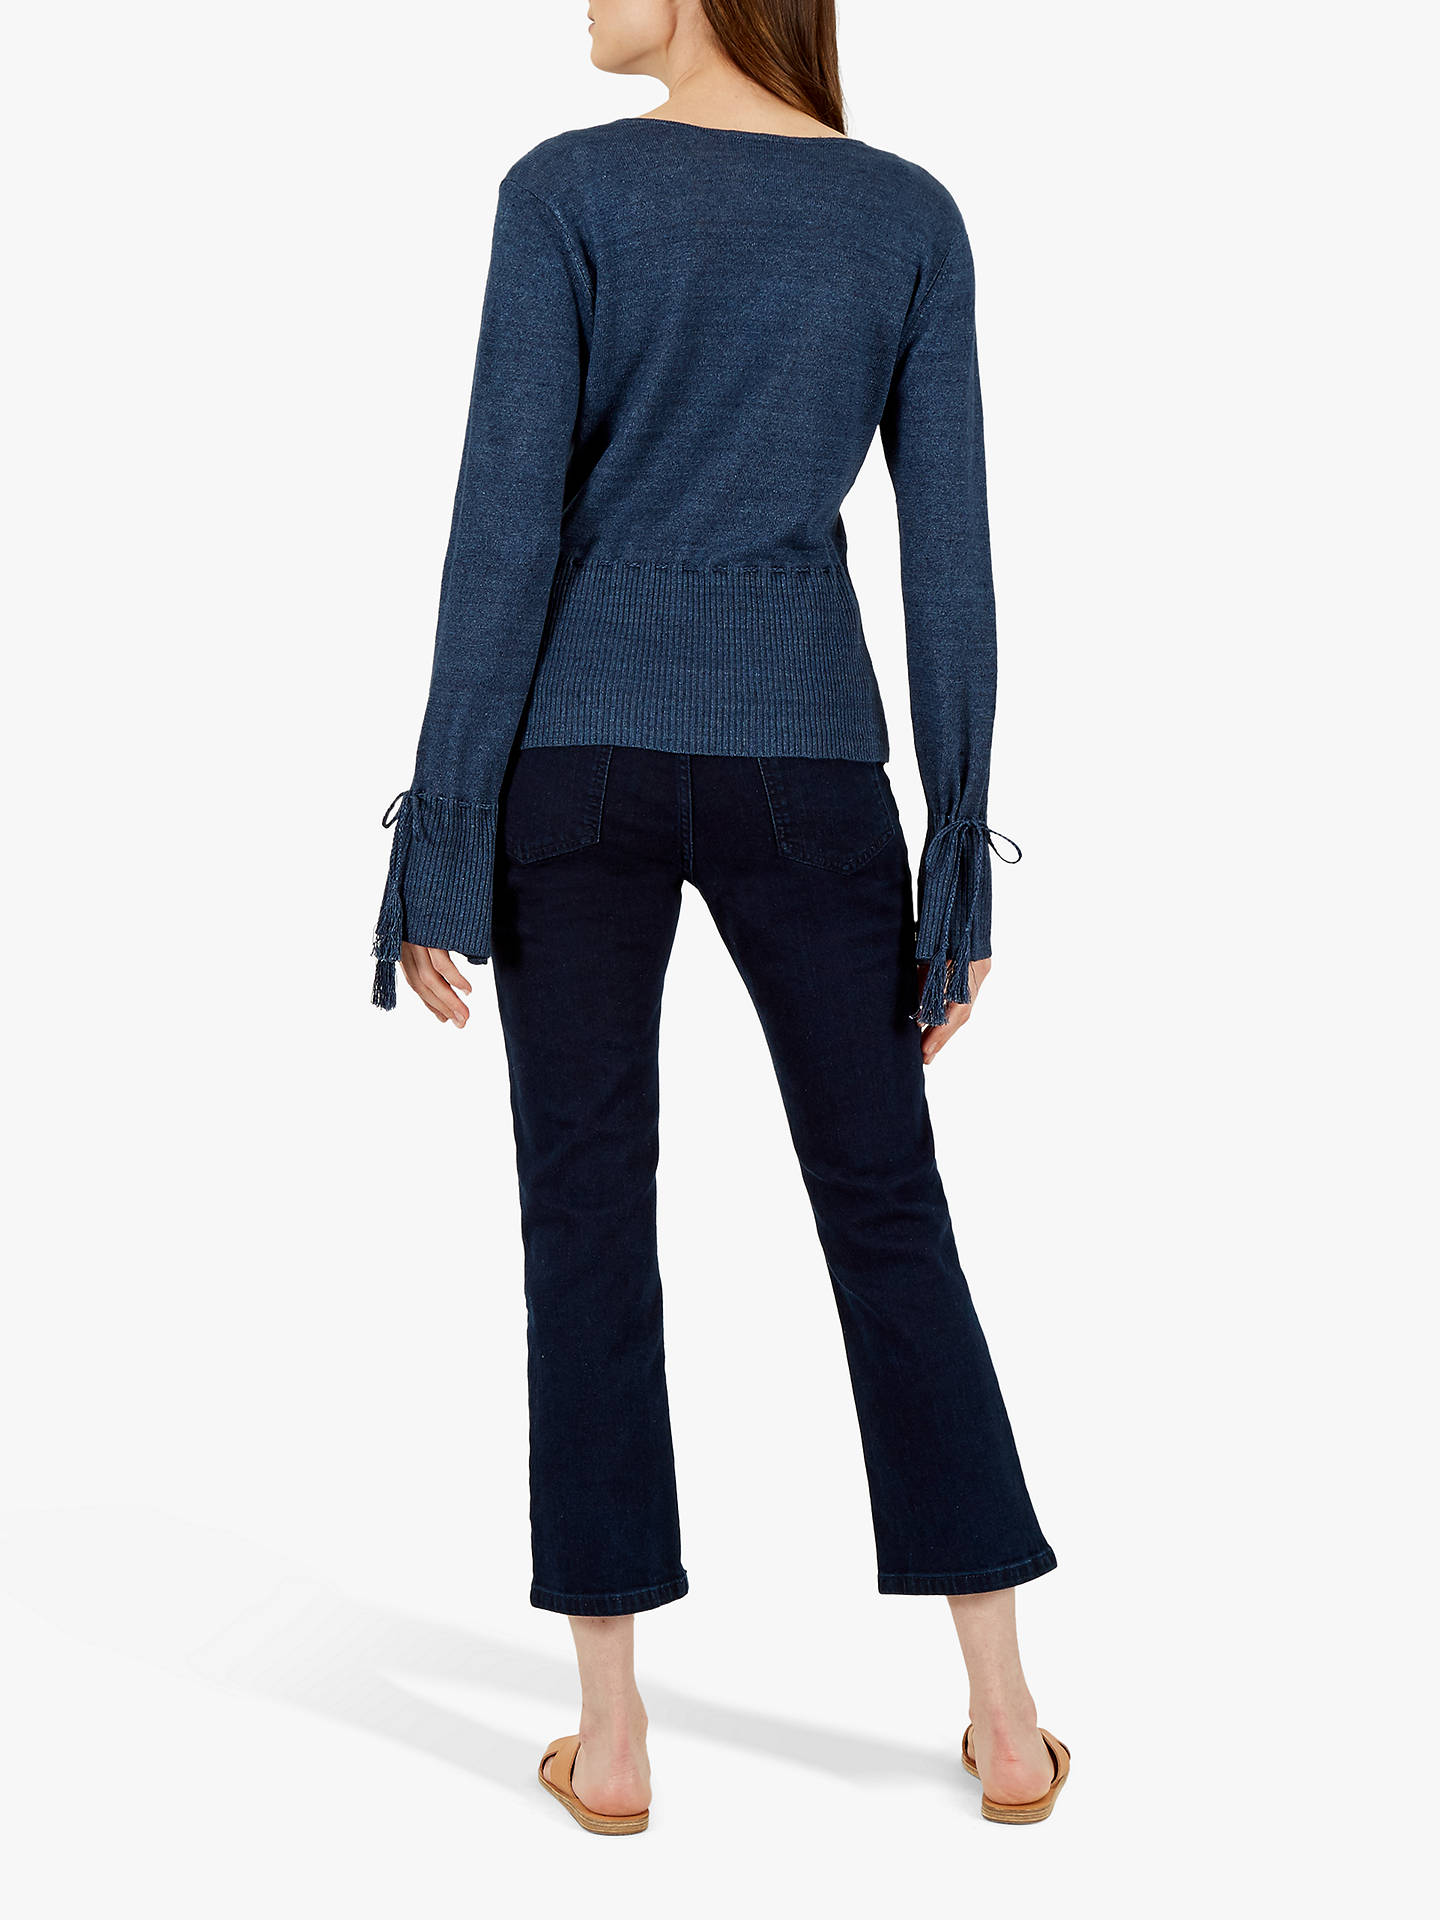 3a81a2a1397a ... Buy Jaeger Rouched Knit Jumper